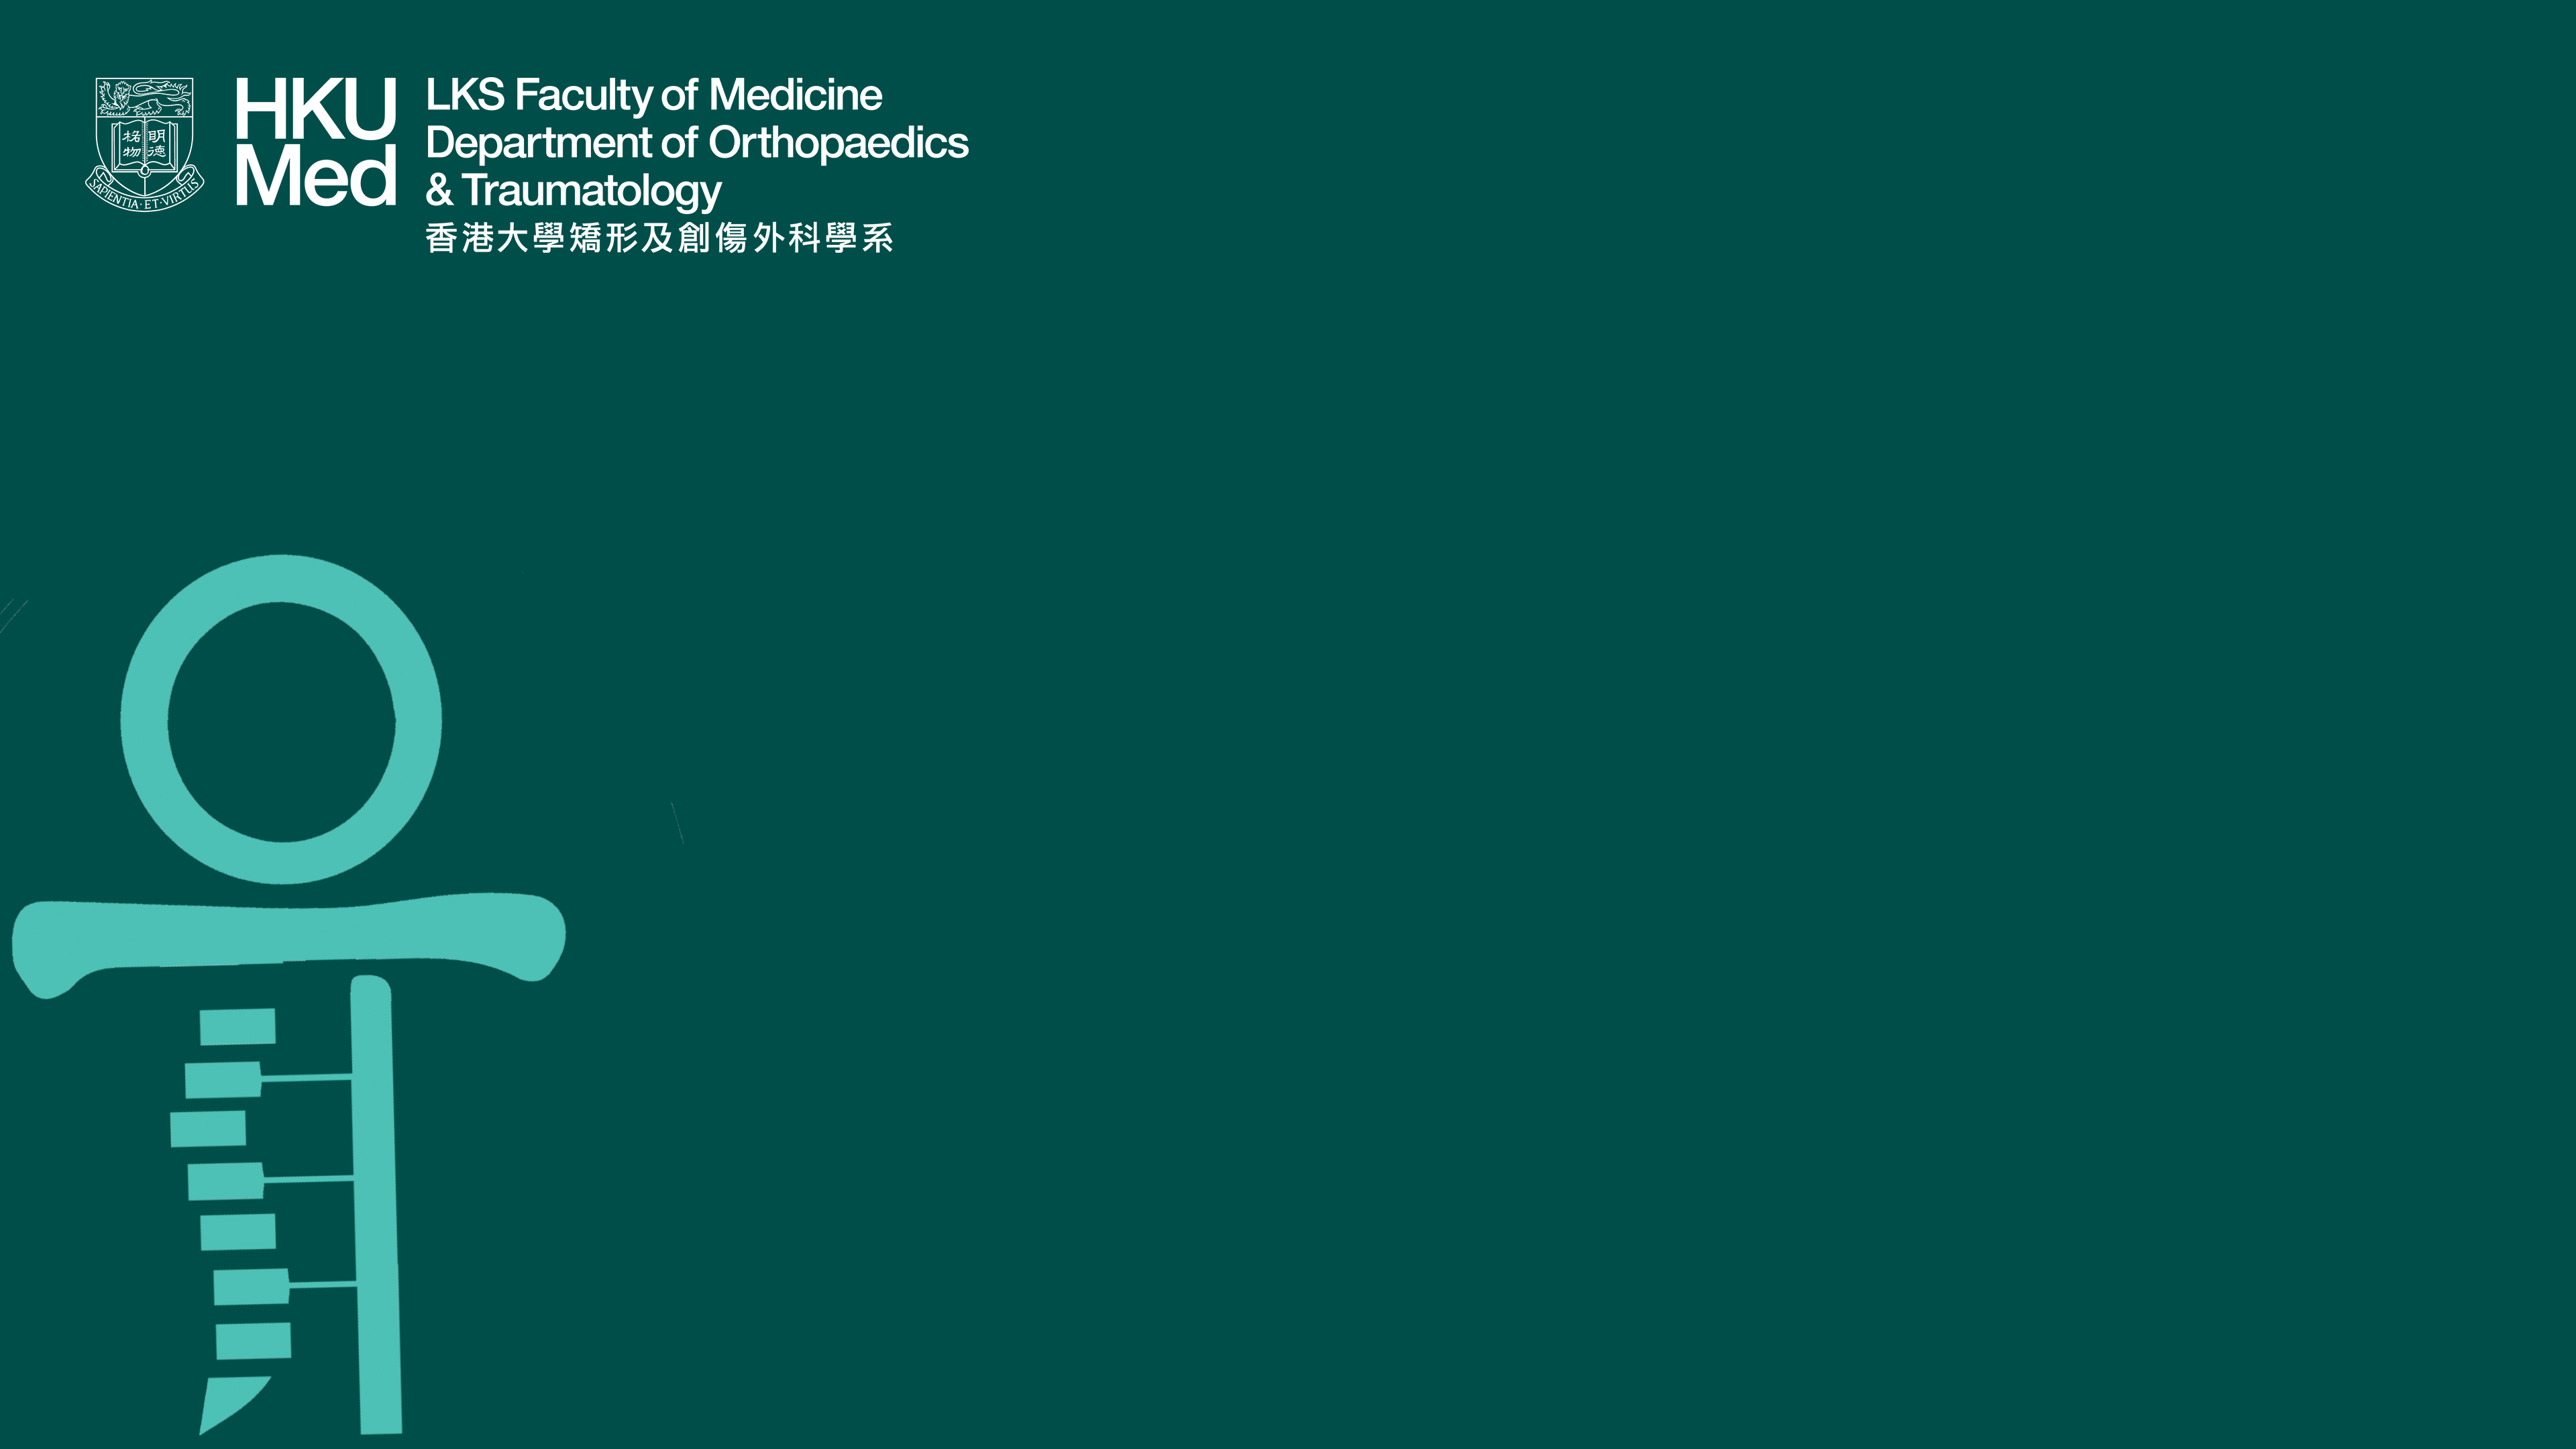 Backdrop for Department of Orthopaedics and Traumatology